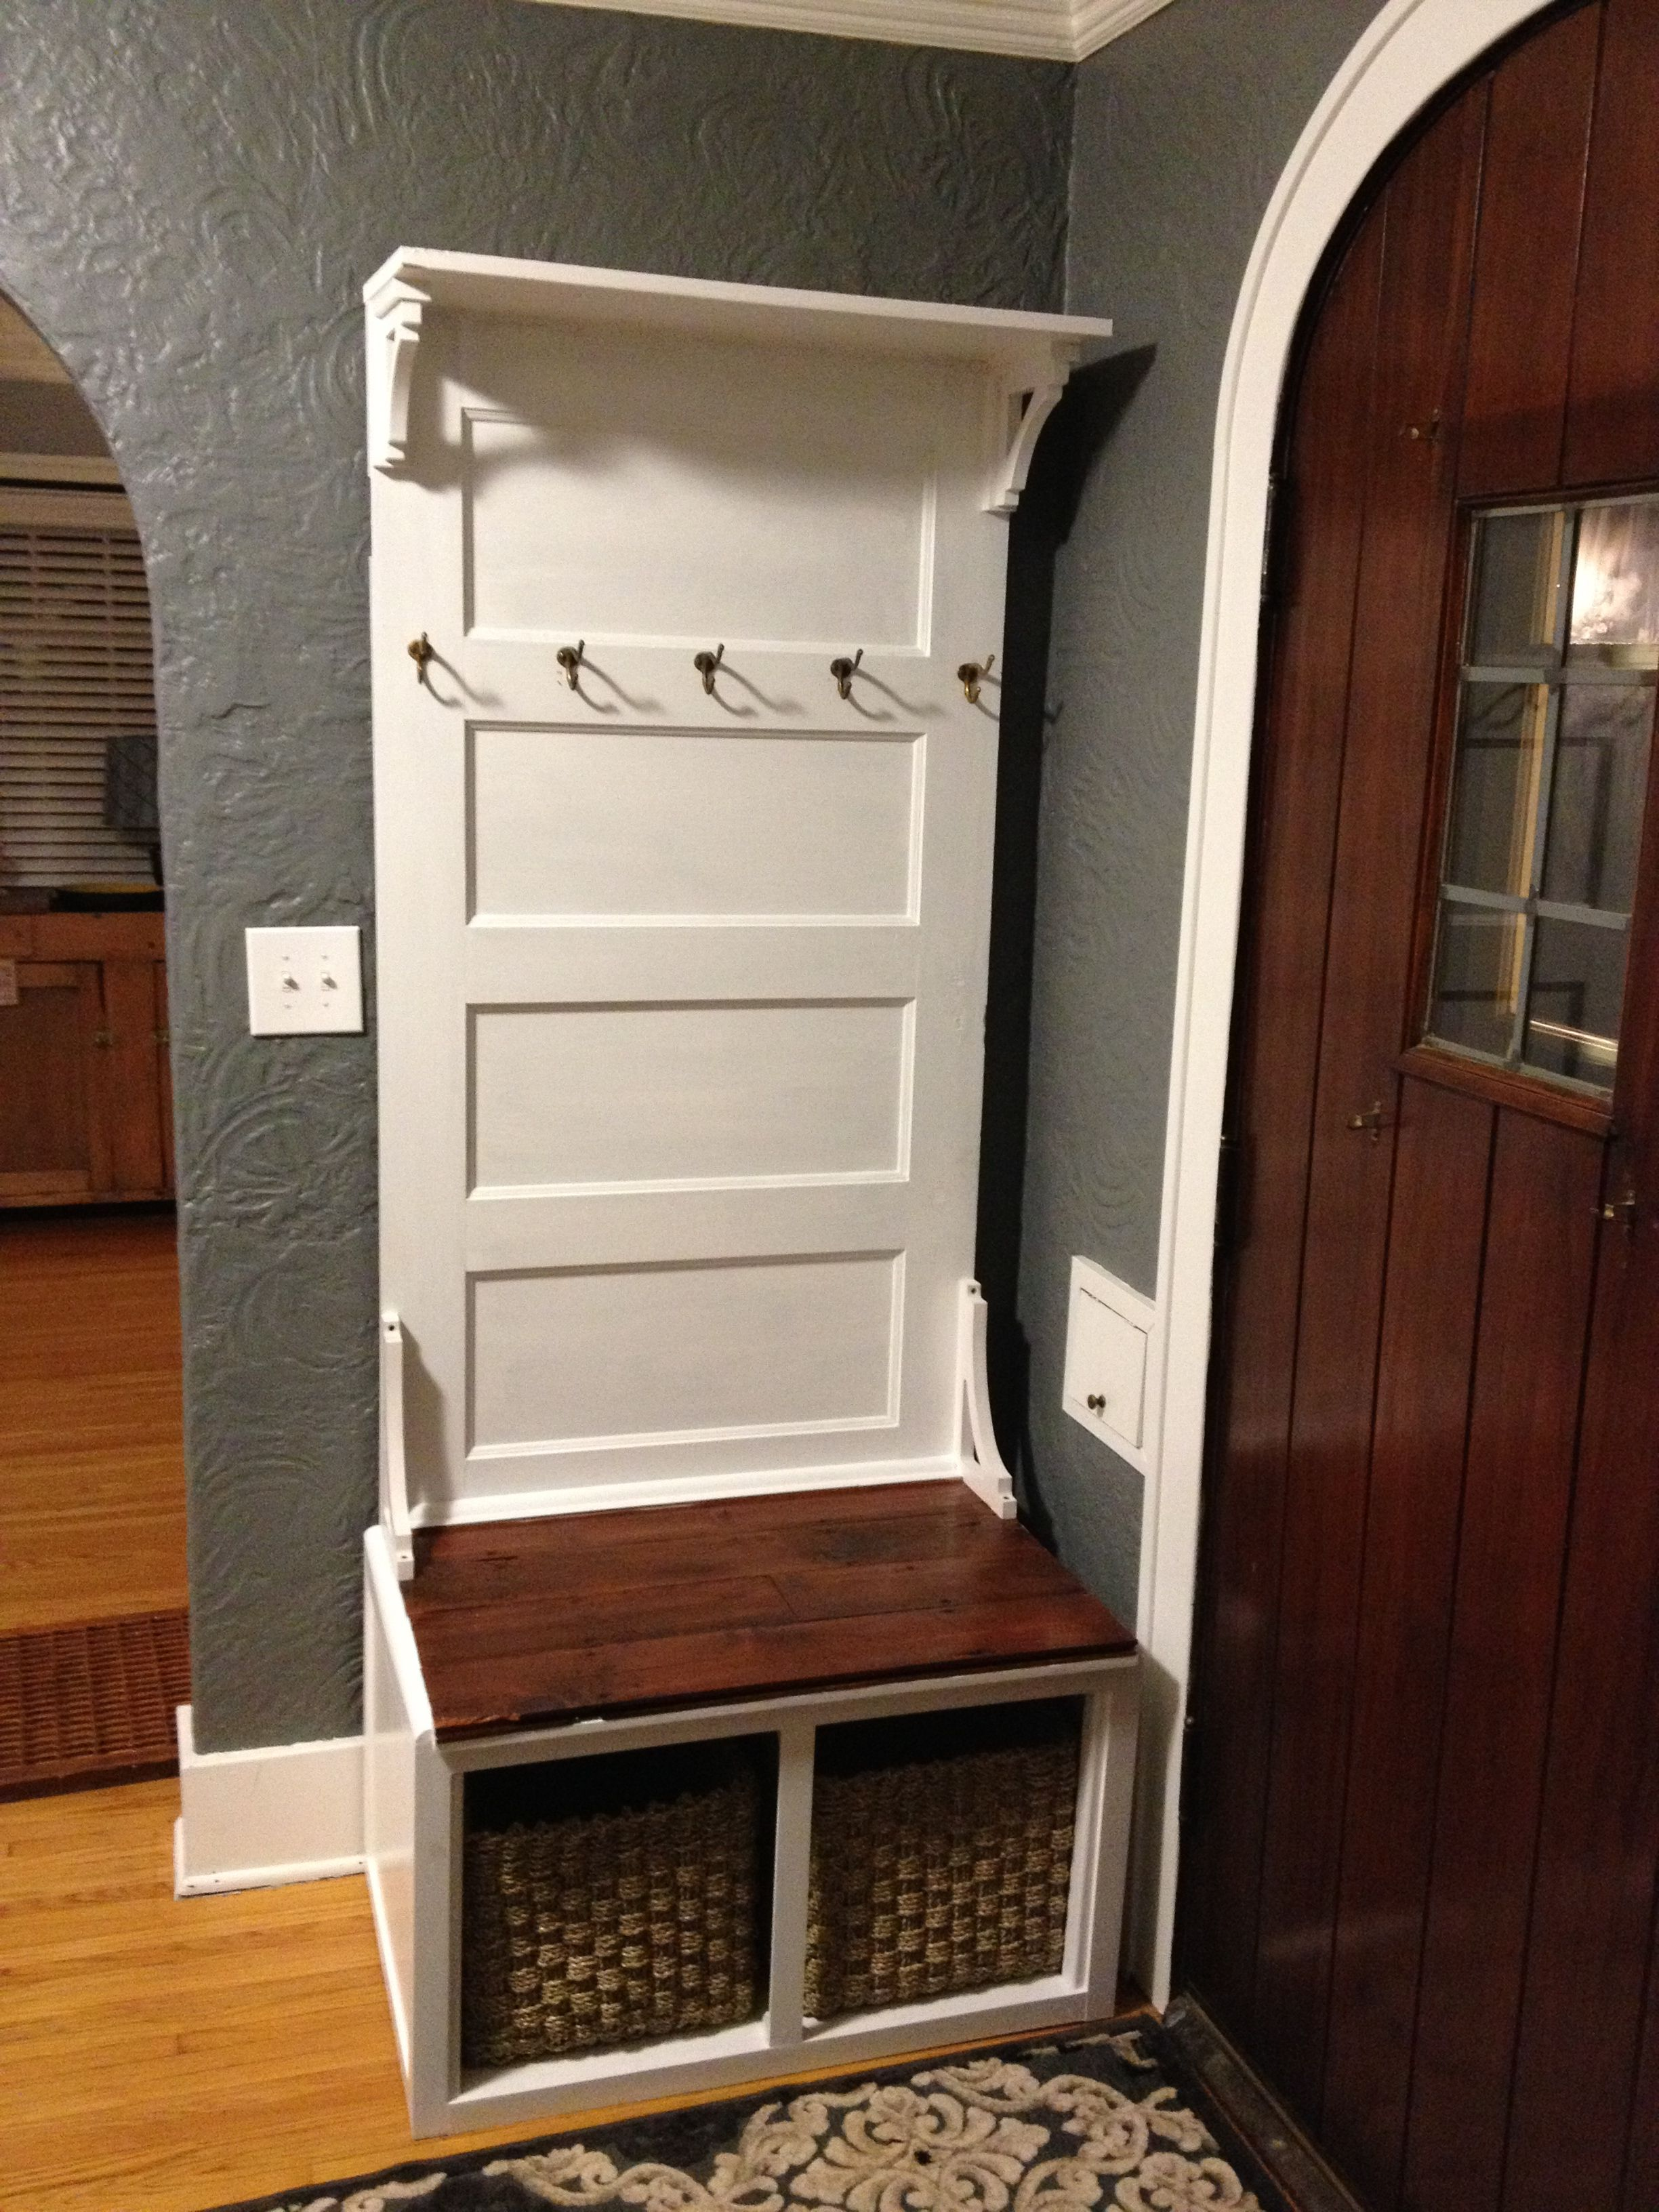 Have Coat Hooks On It For Towels And Then Have The Bench And Under Storage For Shower Supplies